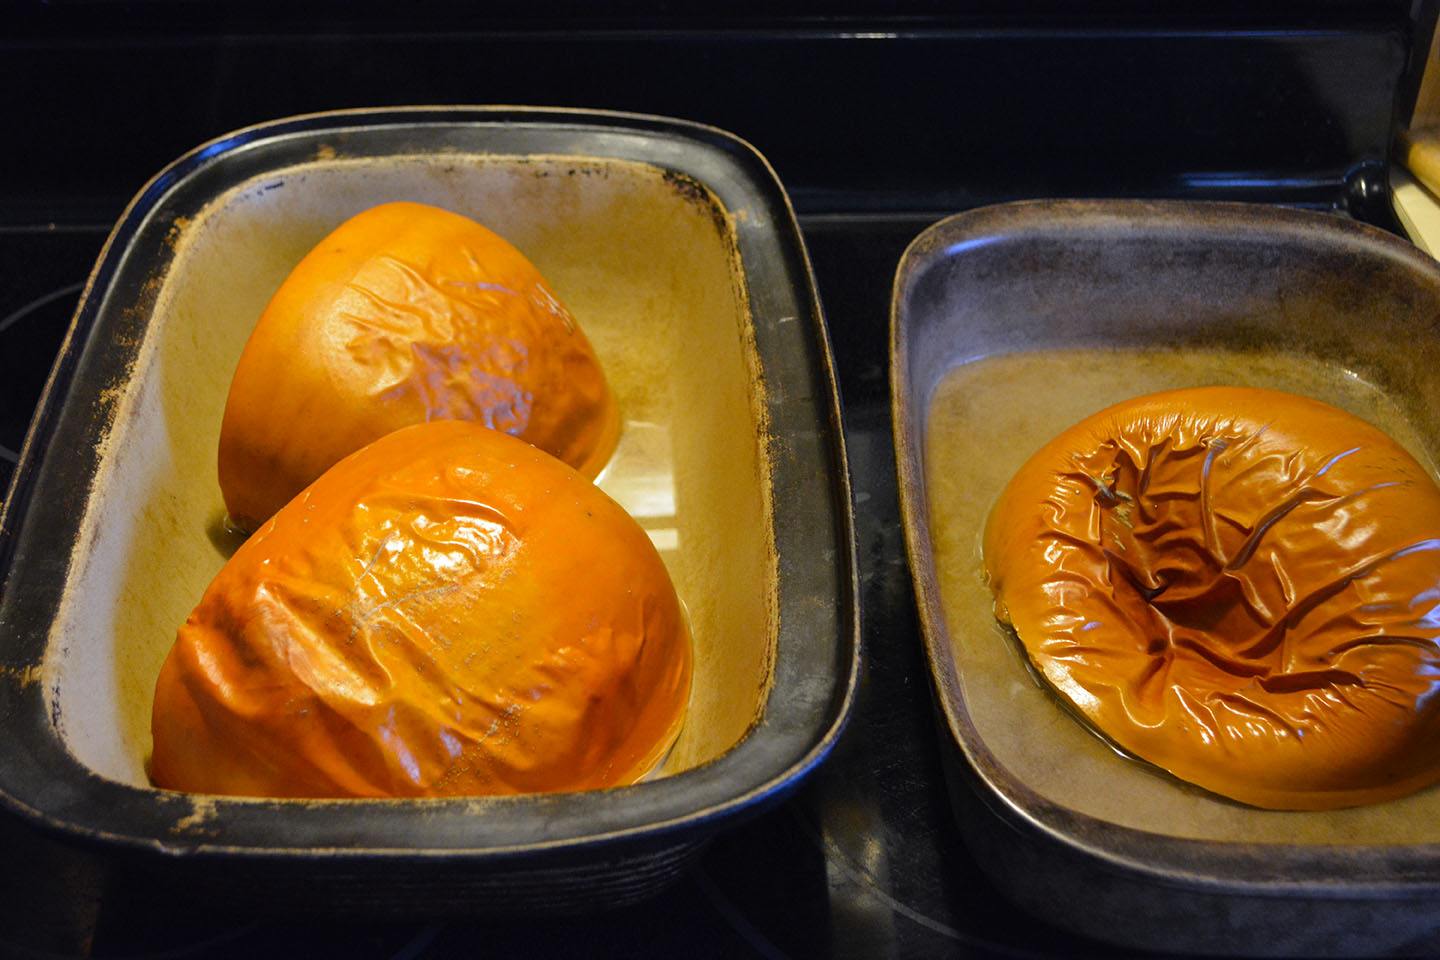 Pumpkin after it has been cooked. The skin has blistered somewhat and the most cooked one has deflated.